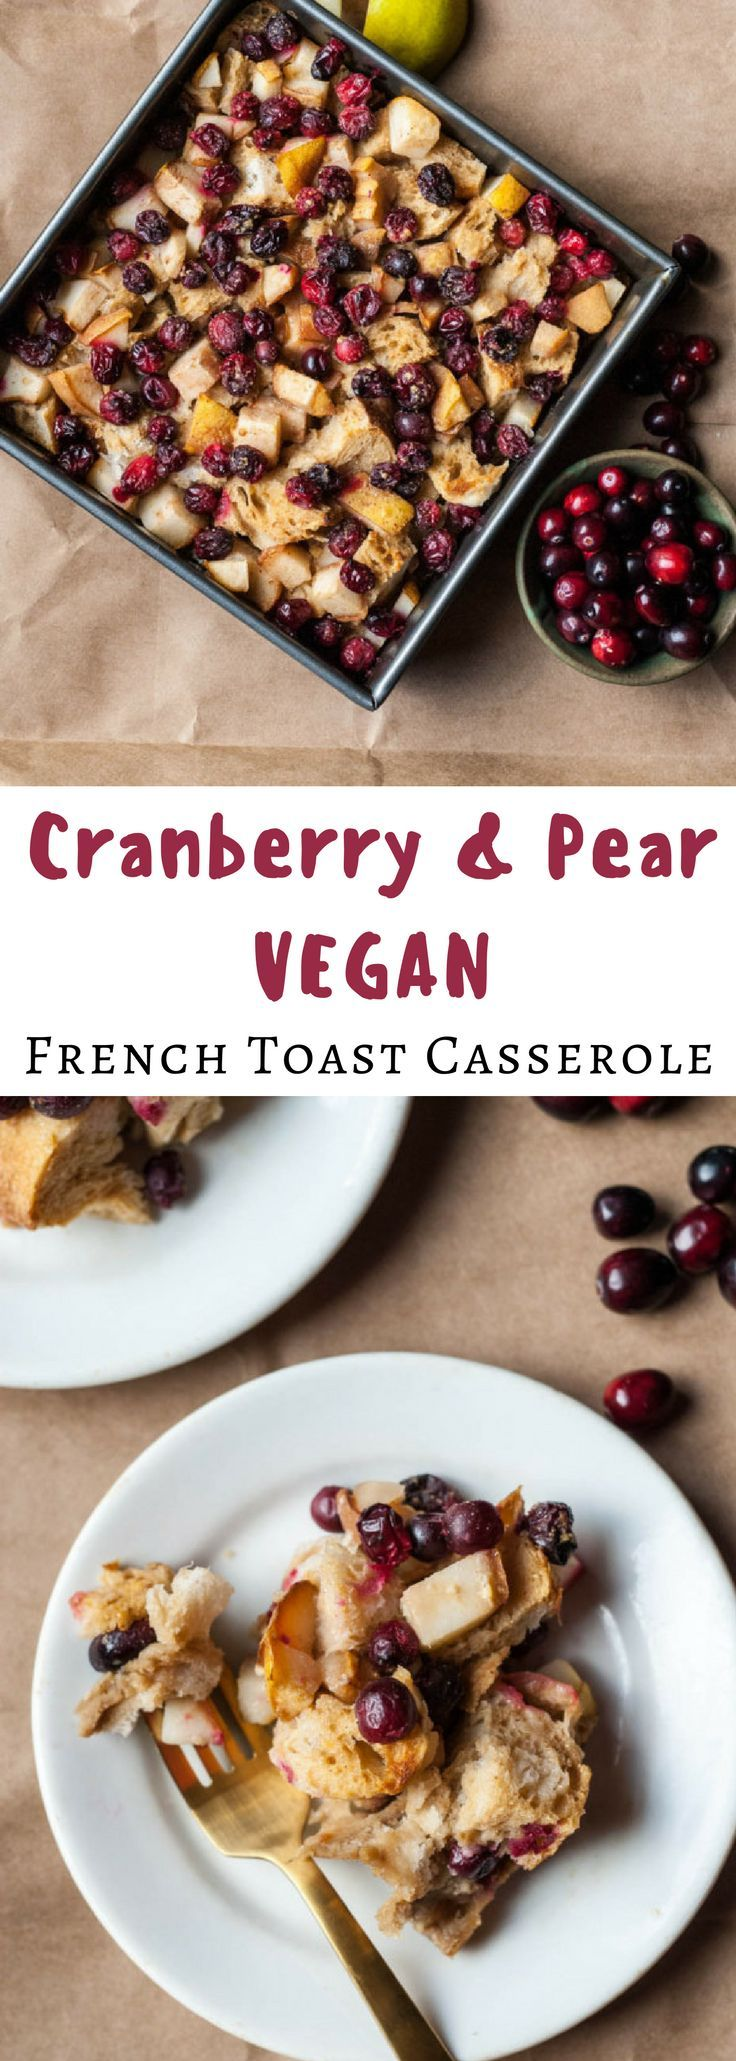 Chock full of cranberries and juicy pears, this vegan french toast casserole is a delicious holiday brunch dish!